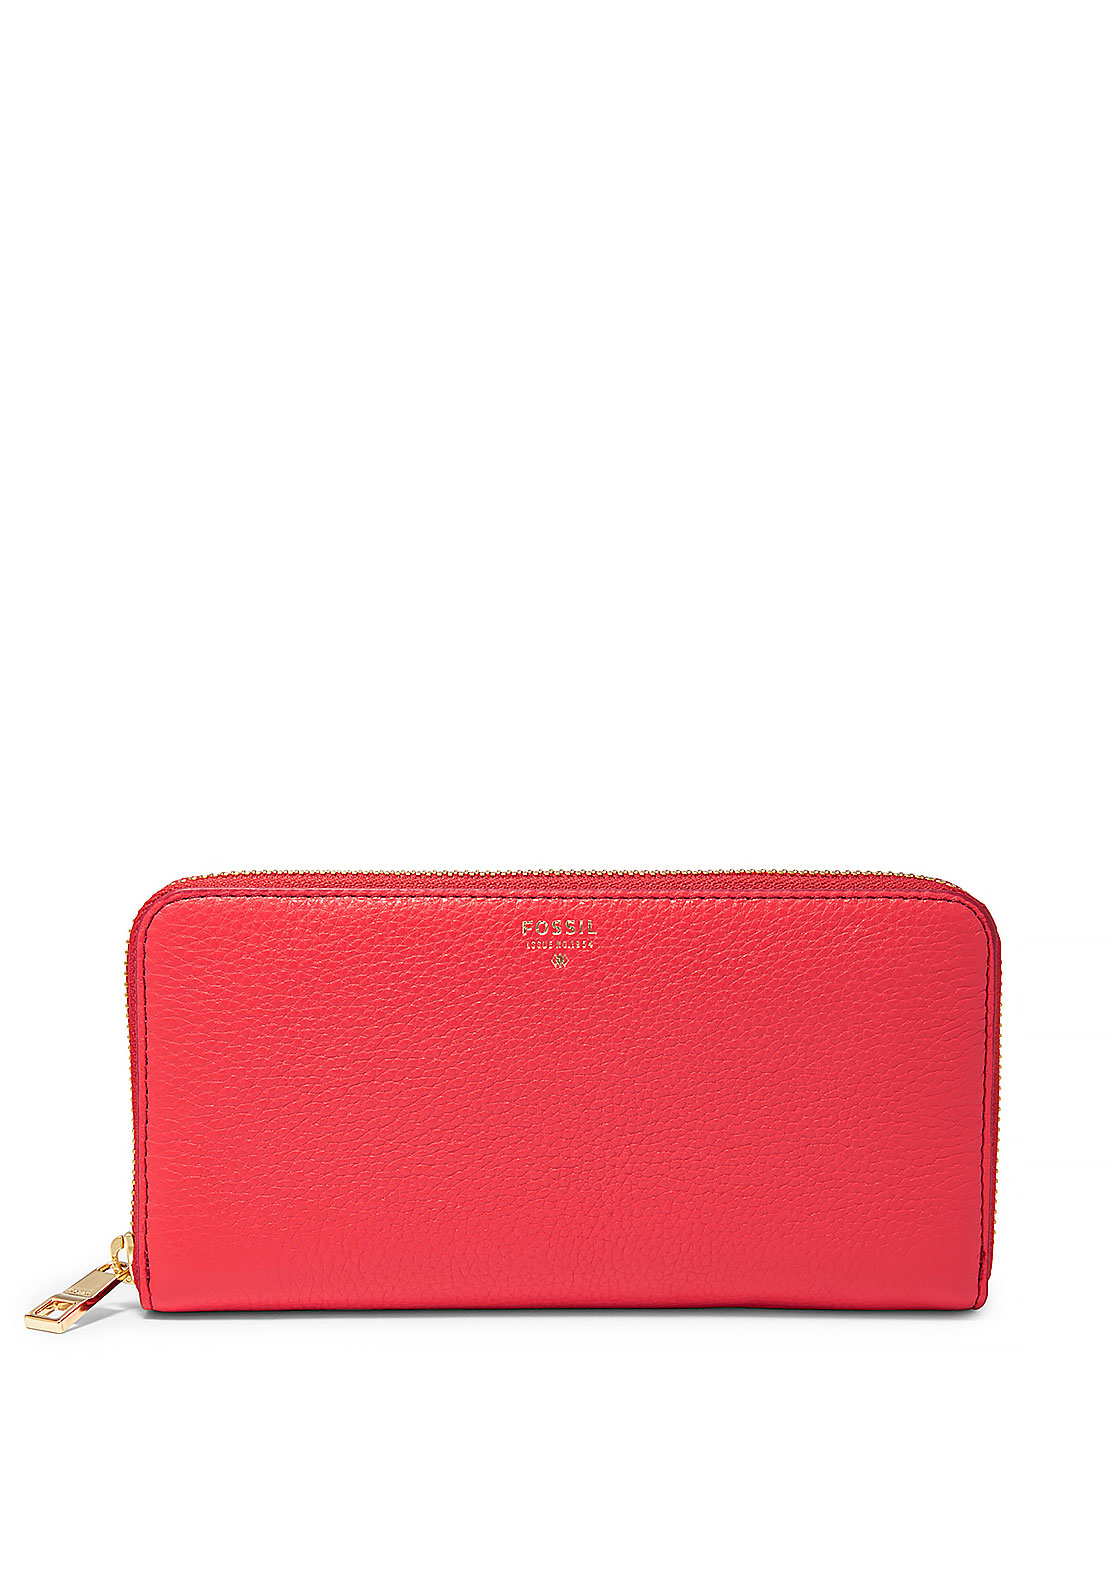 Fossil Sydney Large Leather Zipped Wallet, Tomato Red